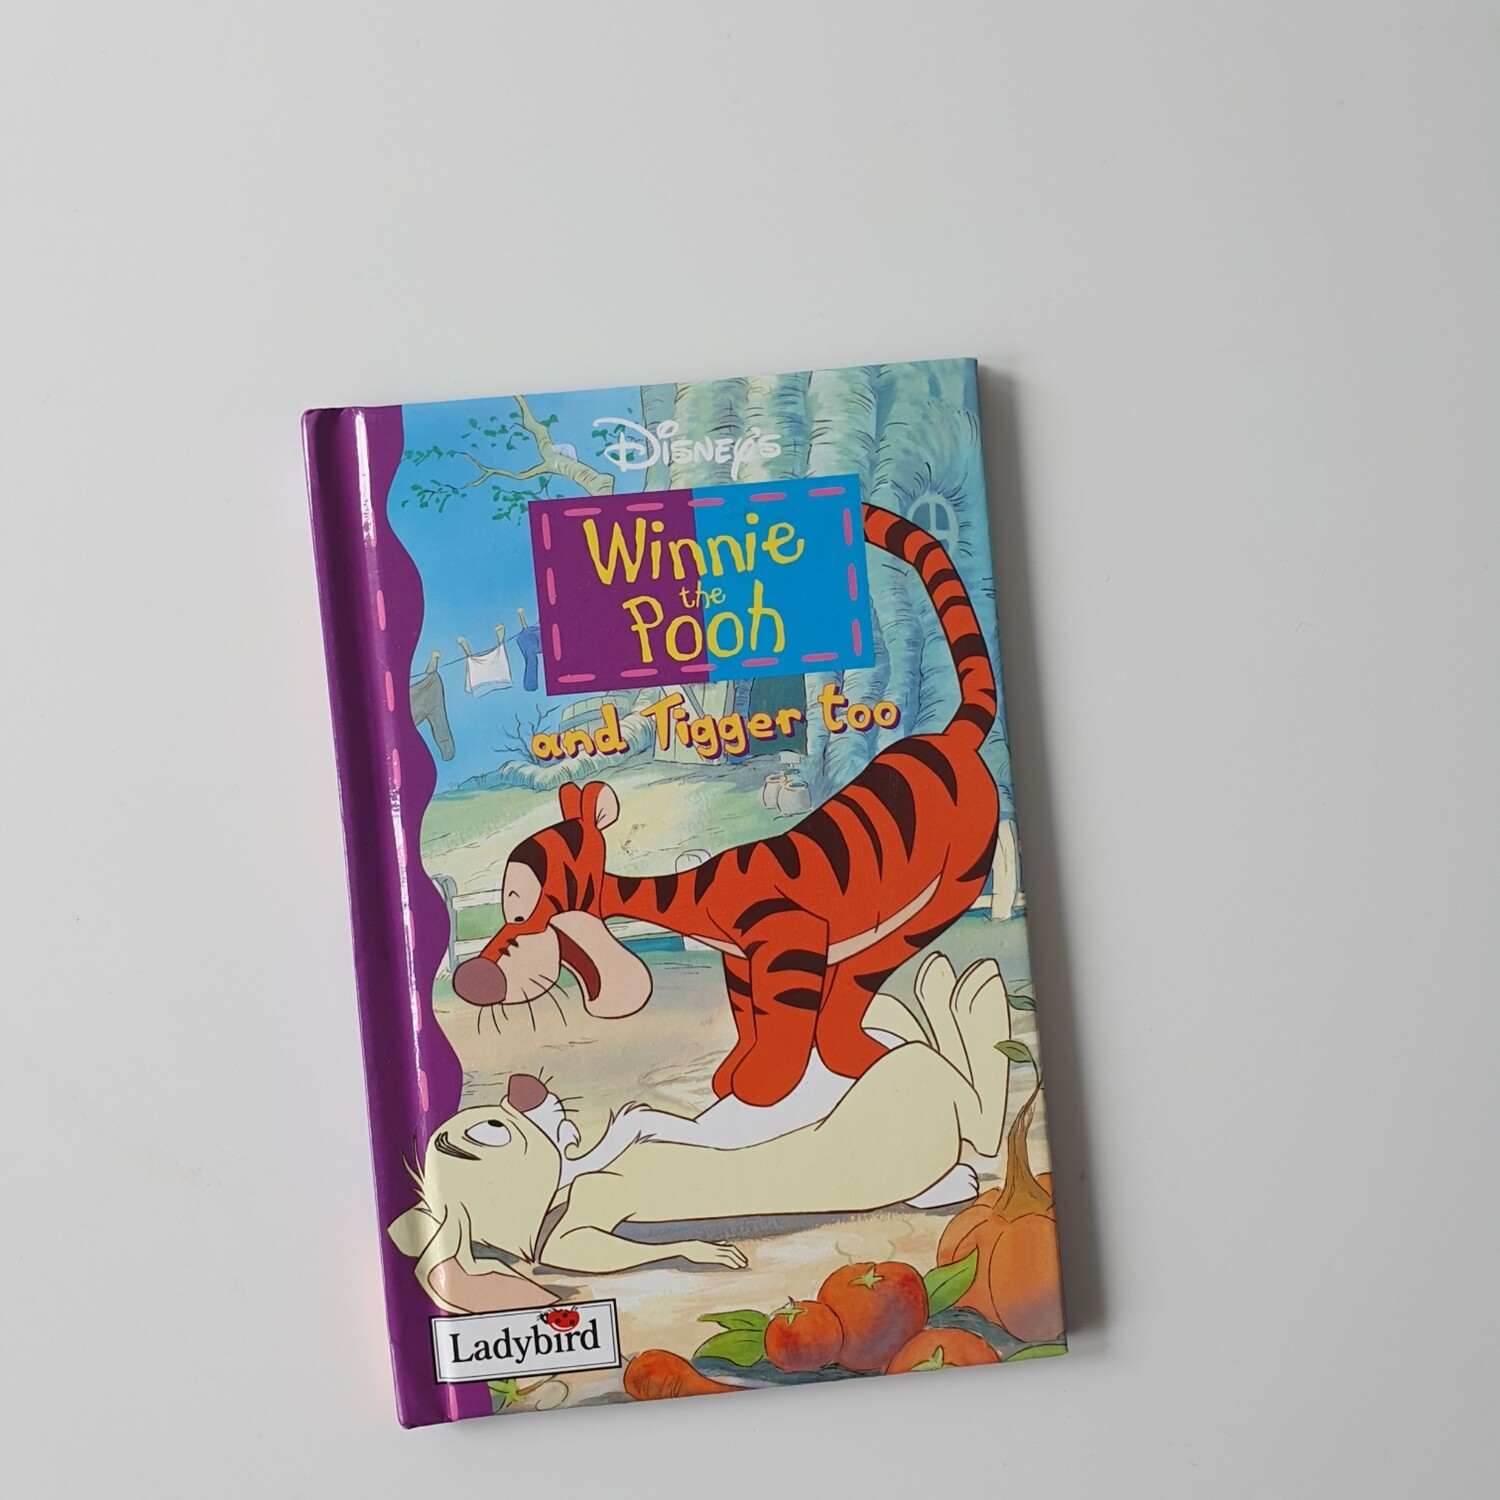 Winnie the Pooh Notebook and Tigger Too